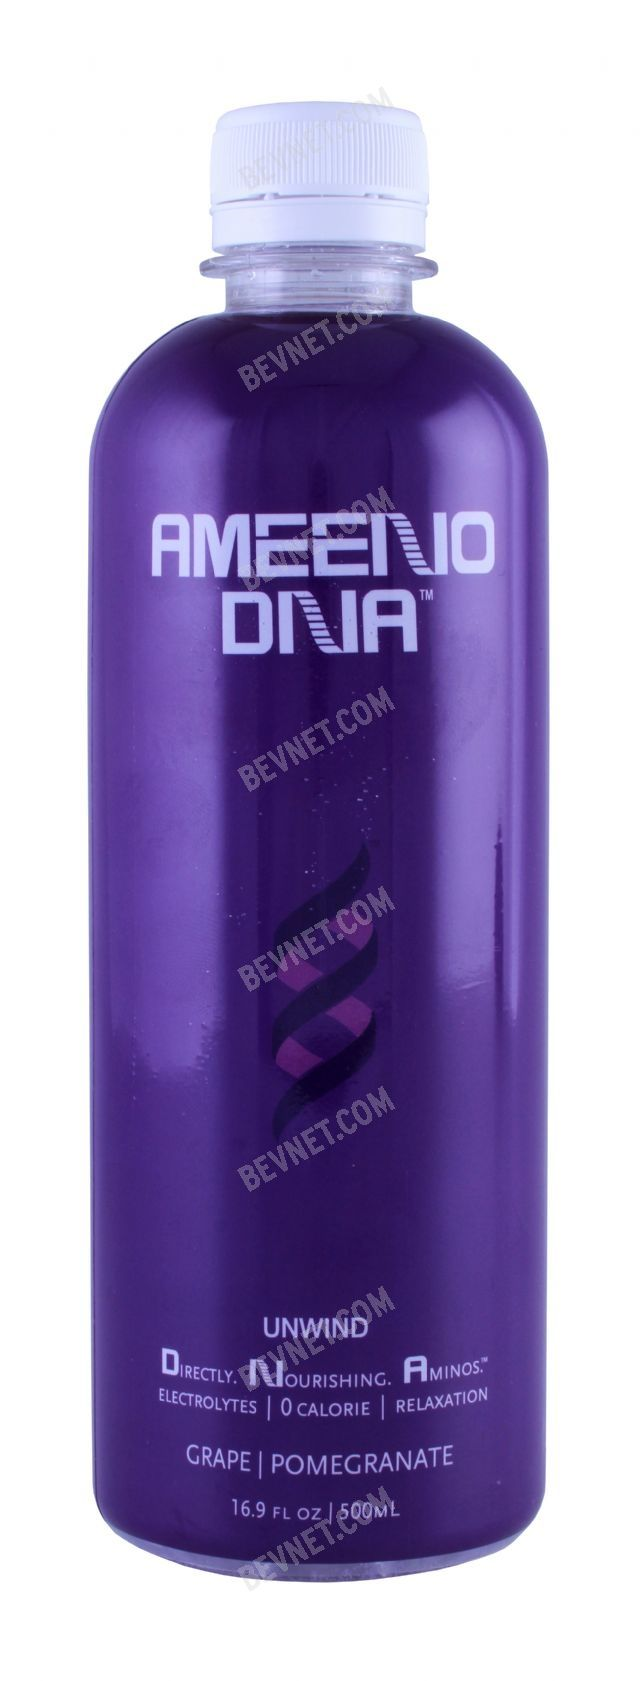 Ameeno DNA: